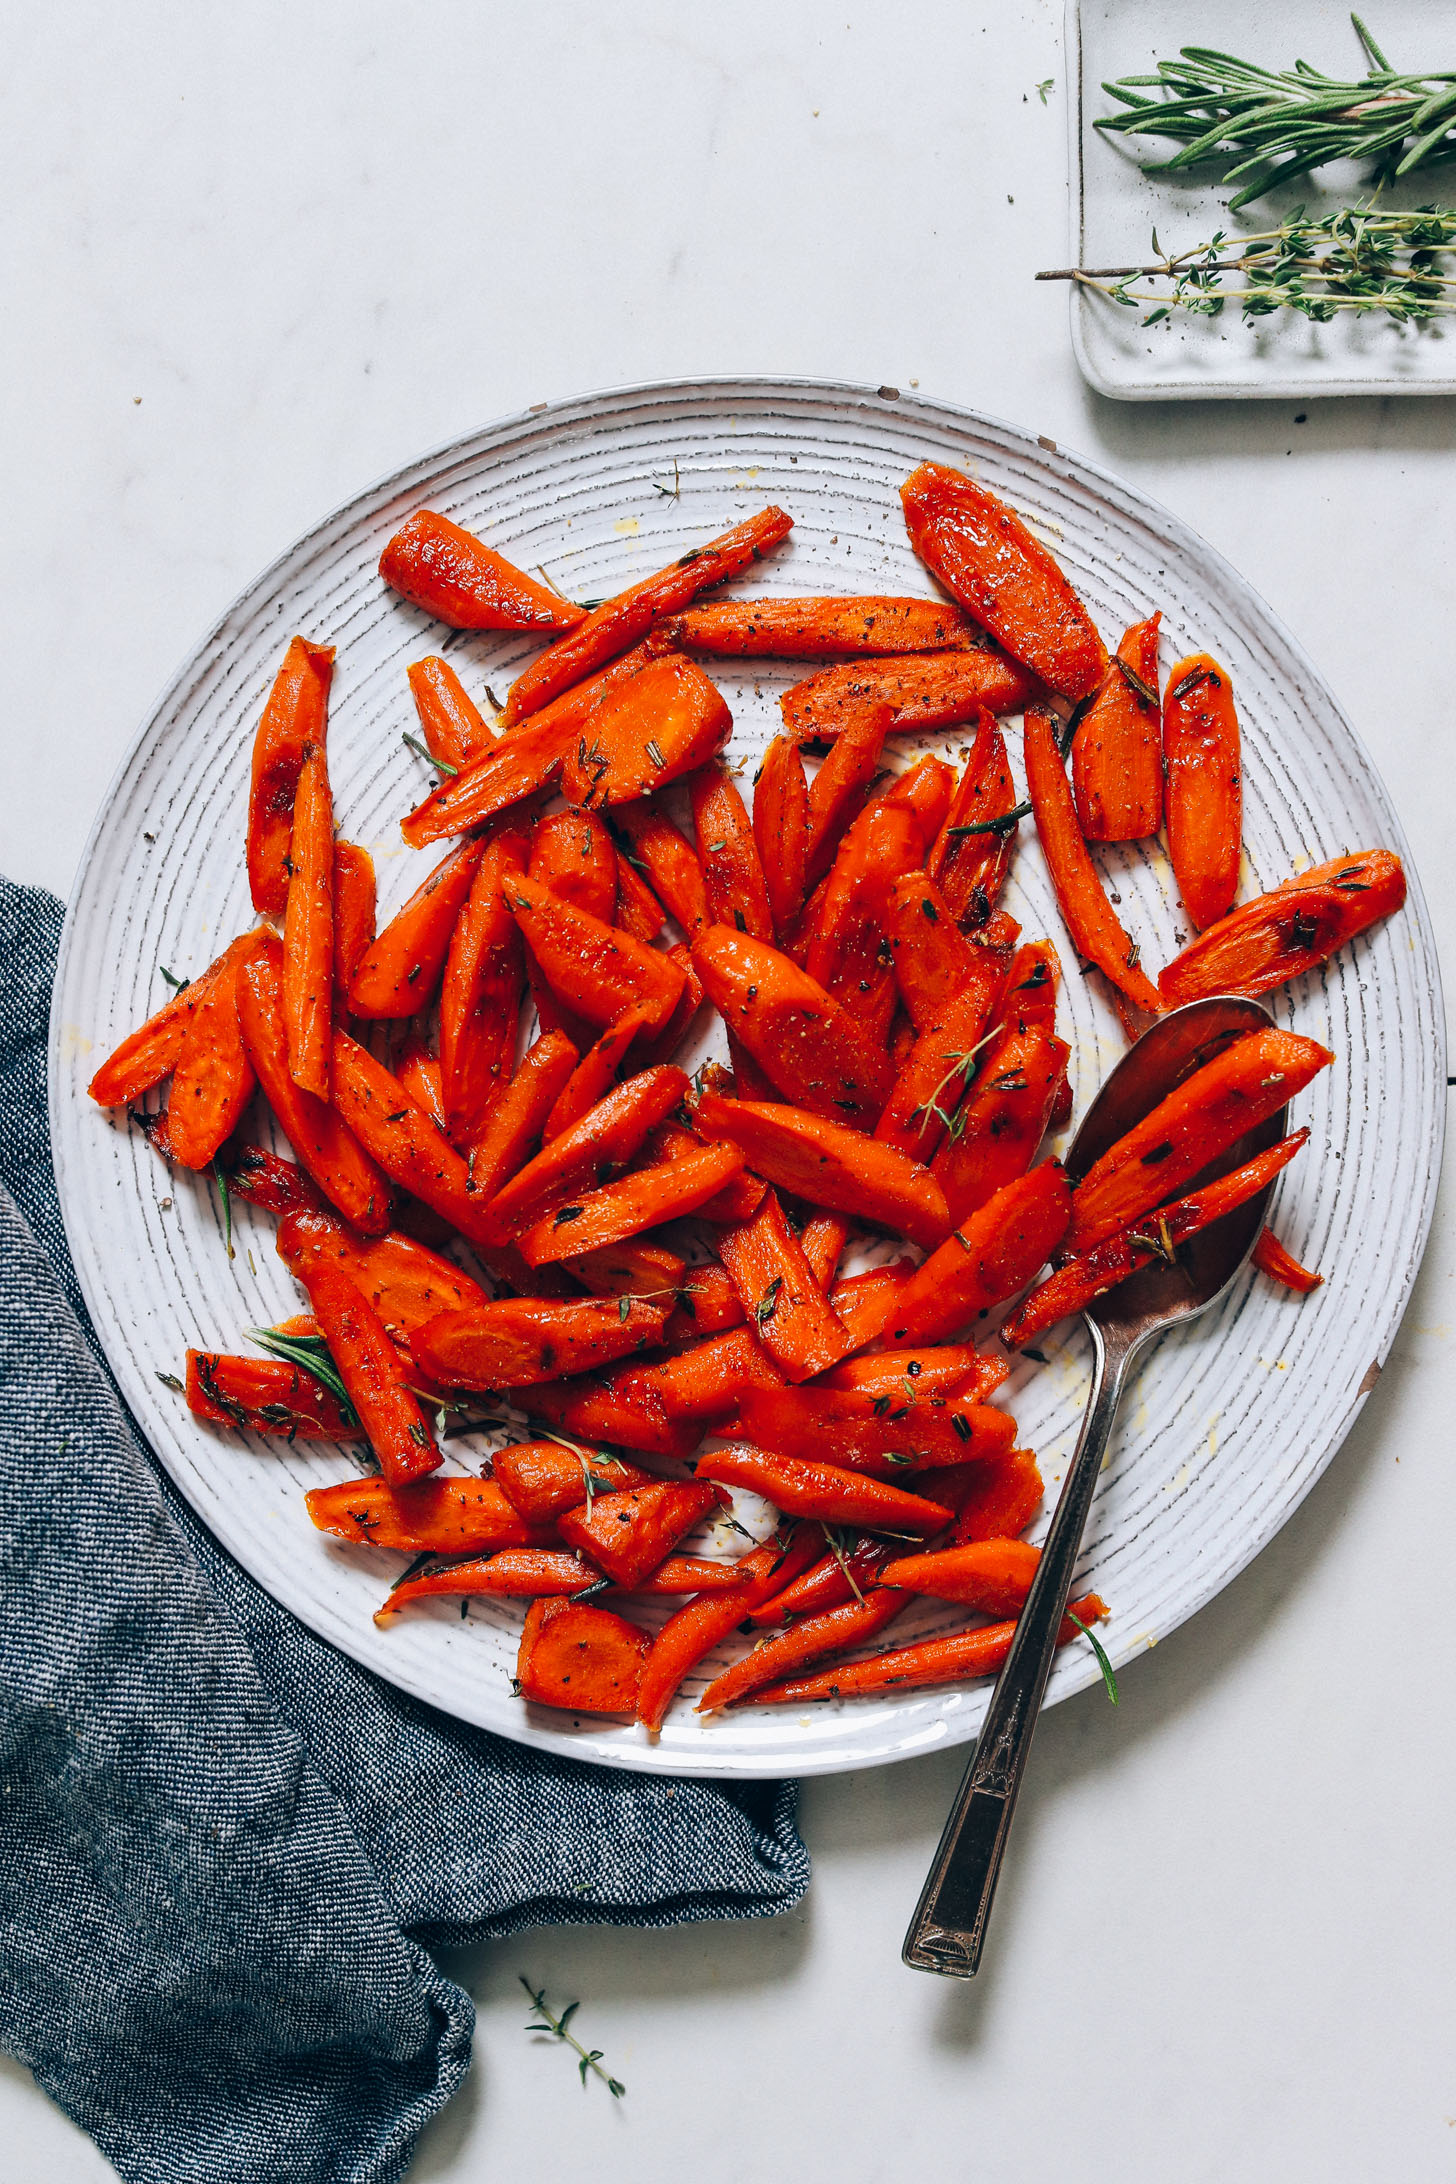 Platter of roasted carrots with fresh thyme and rosemary